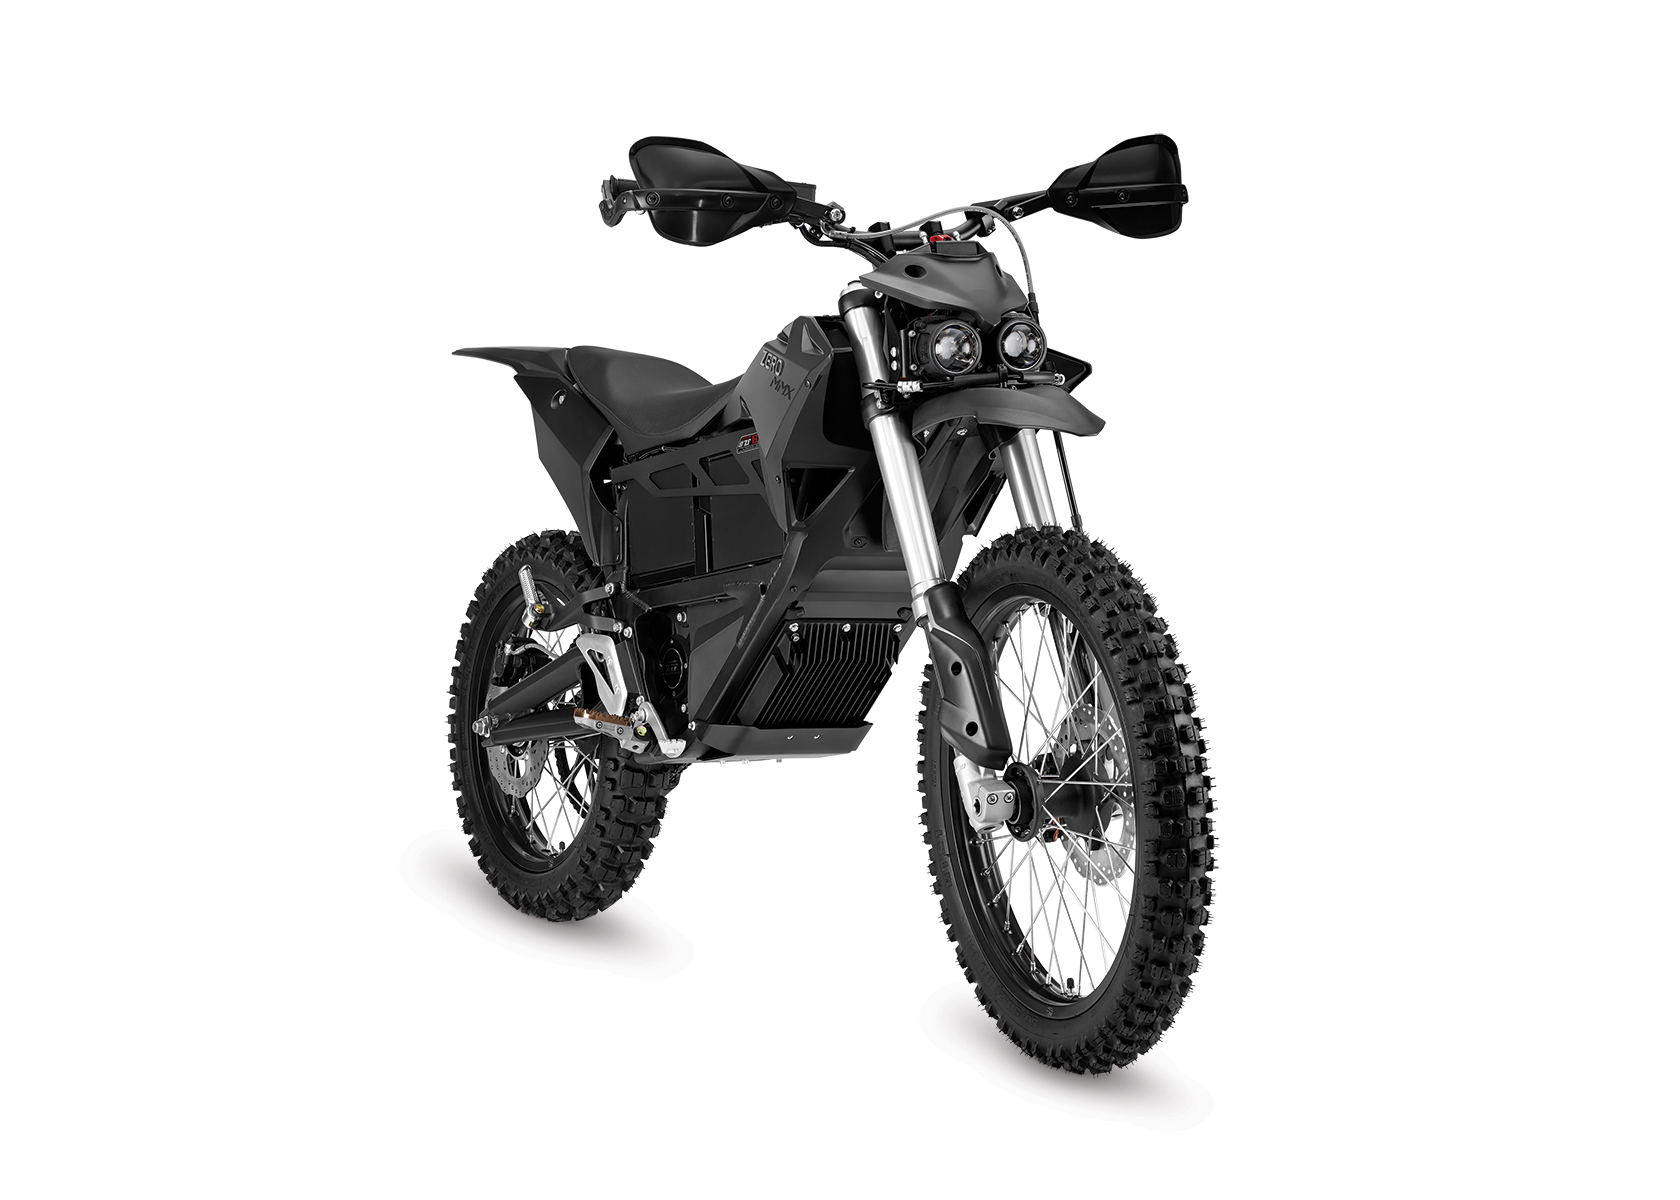 2016 Zero MMX Electric Motorcycle: Right Angle, White Background